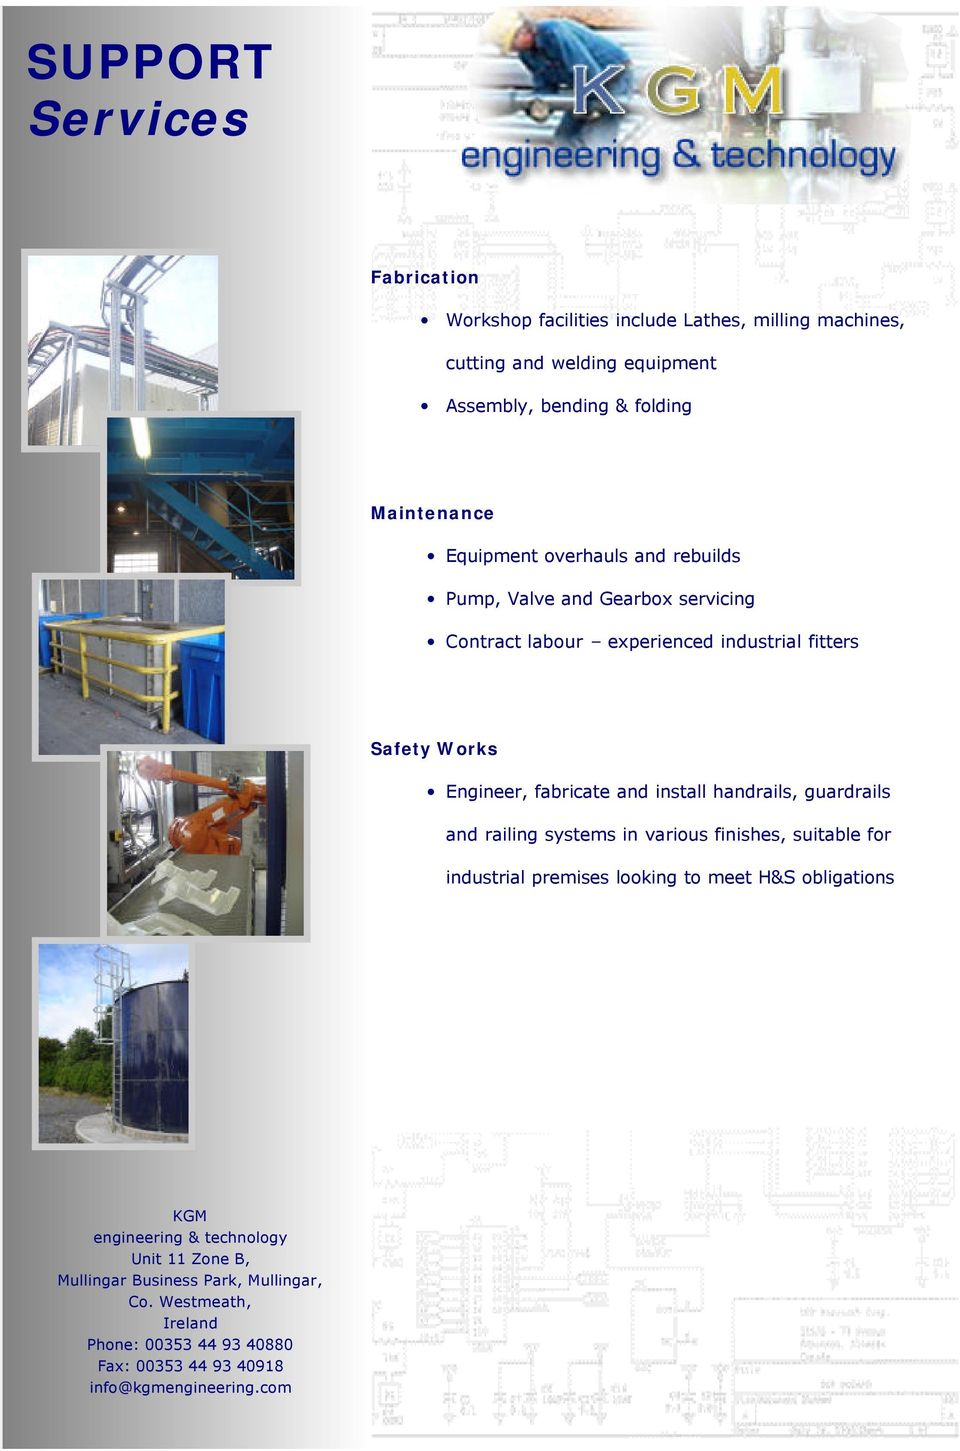 Contract labour experienced industrial fitters Safety Works Engineer, fabricate and install handrails,